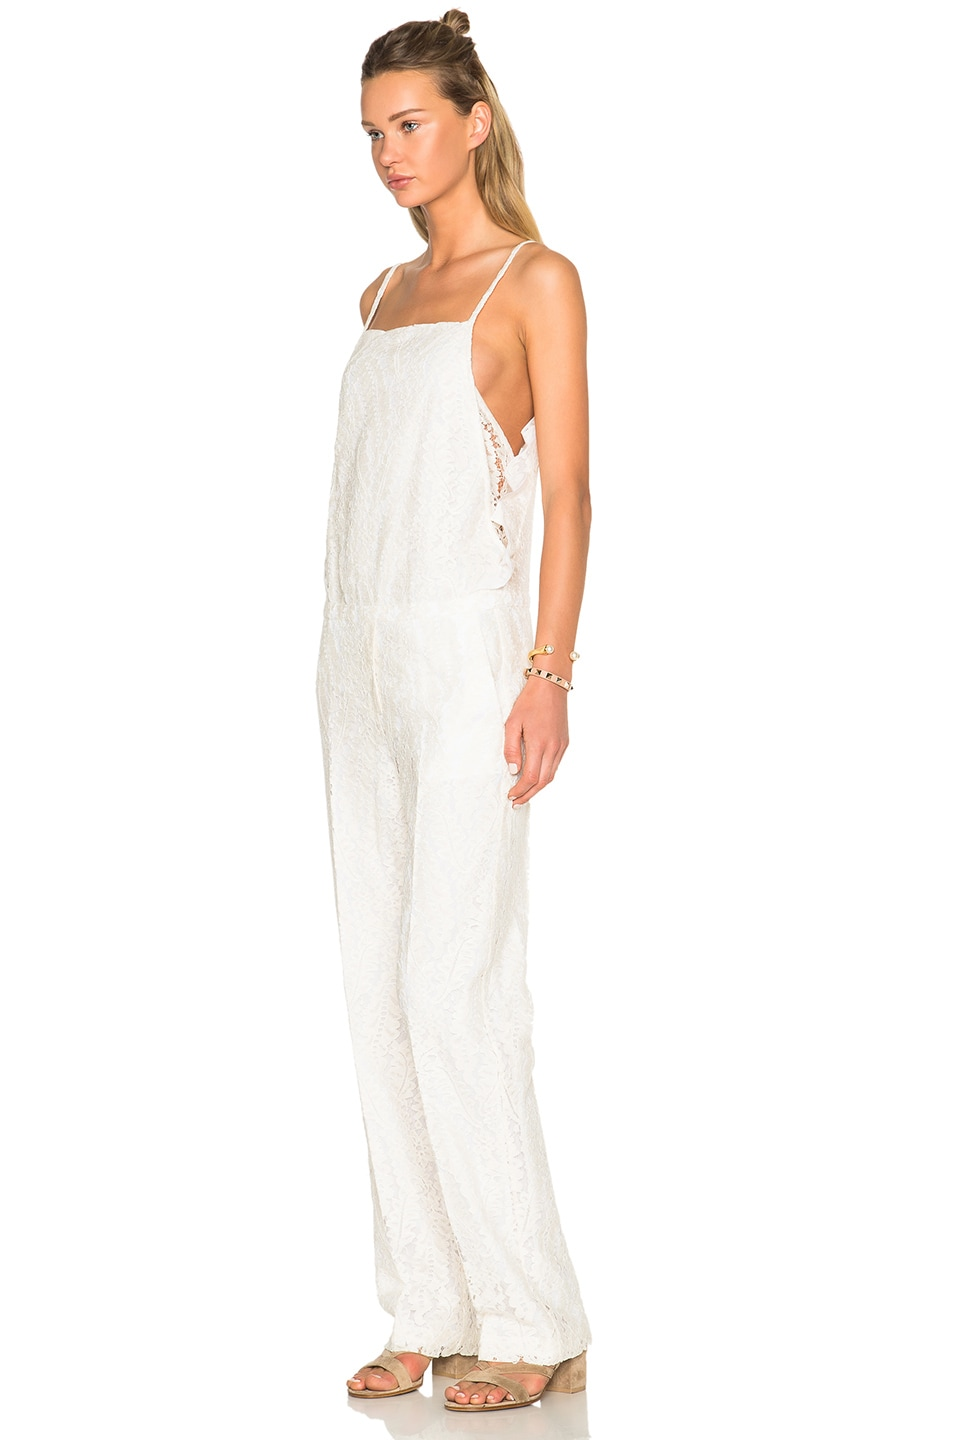 Image 2 of No. 21 Jumpsuit in White